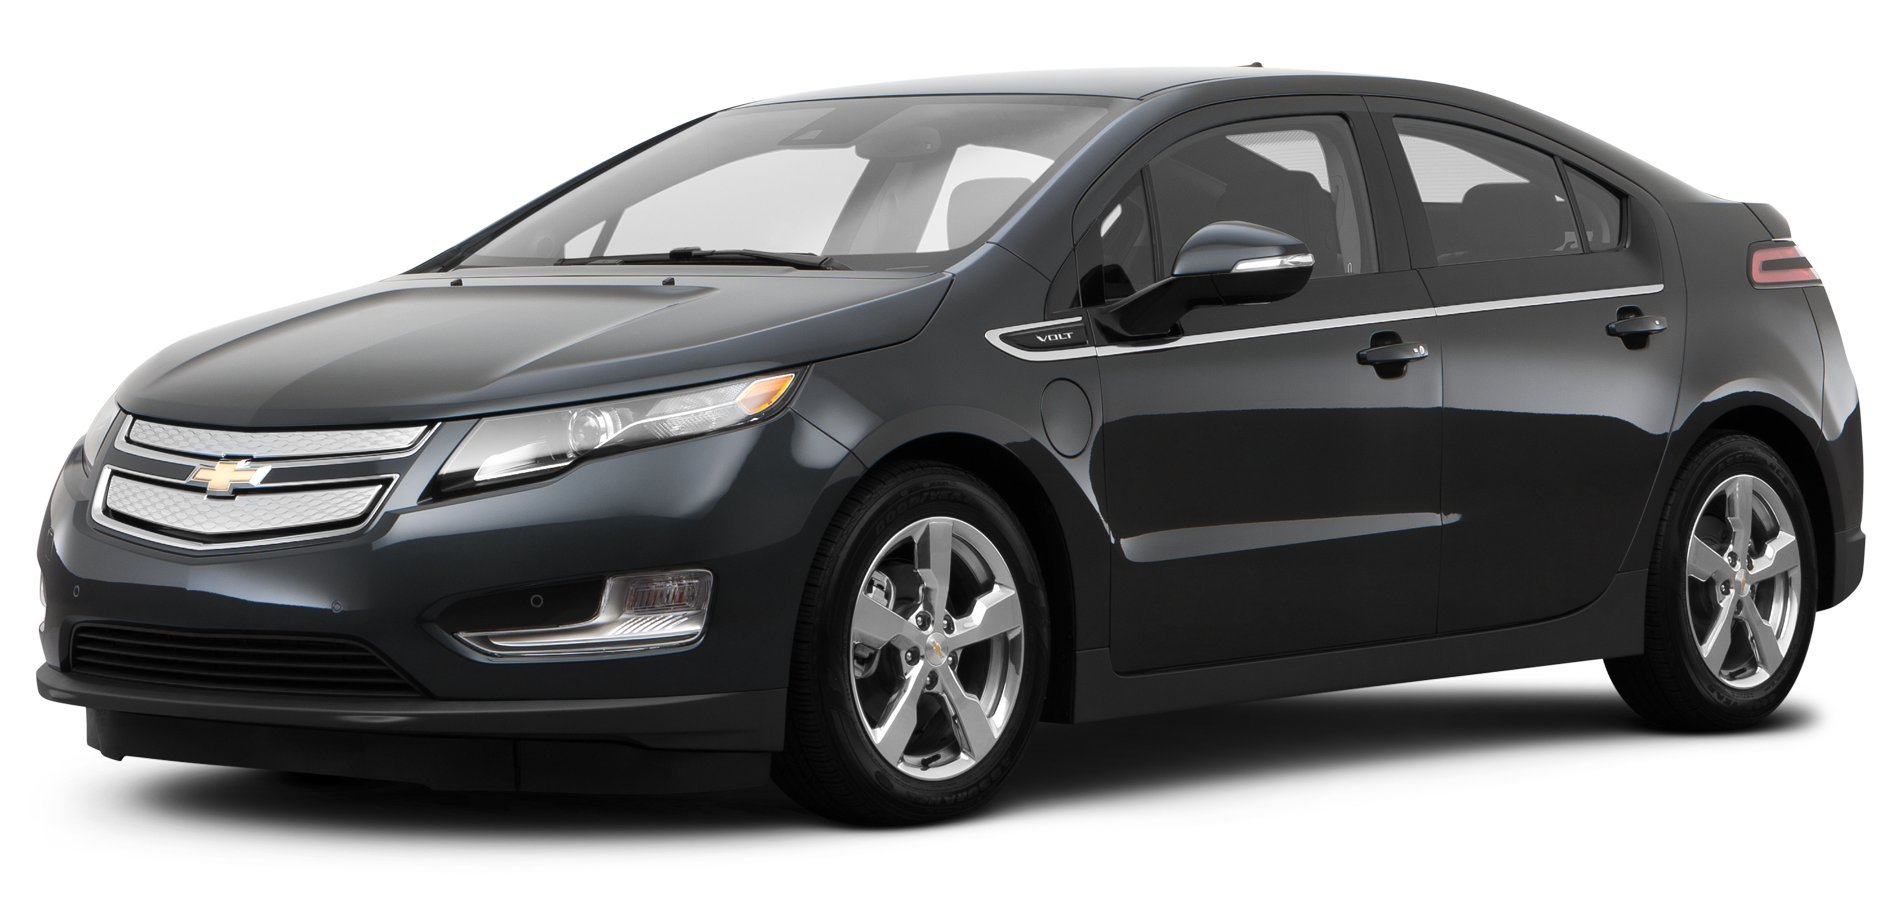 Amazon.com: 2014 Chevrolet Volt Reviews, Images, and Specs: Vehicles